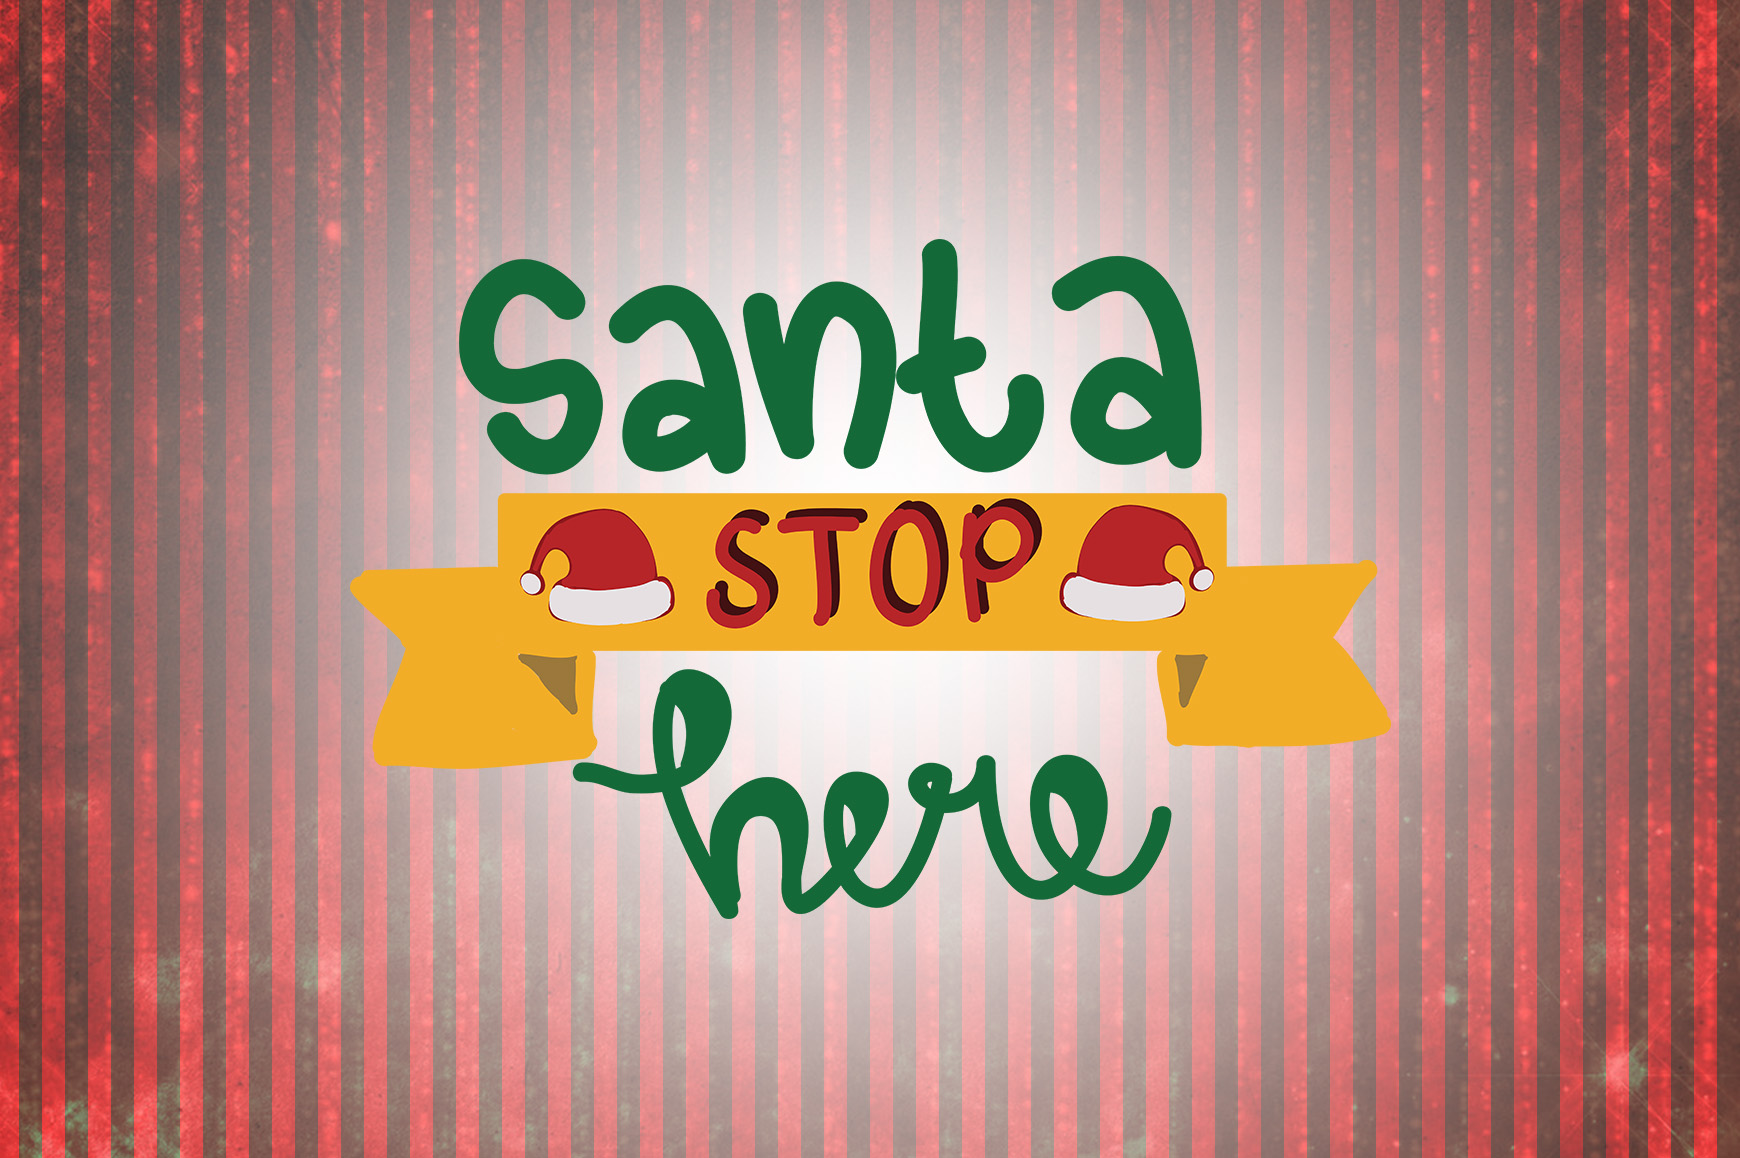 Download Free Santa Stop Here Christmas Quotes Graphic By Wienscollection for Cricut Explore, Silhouette and other cutting machines.